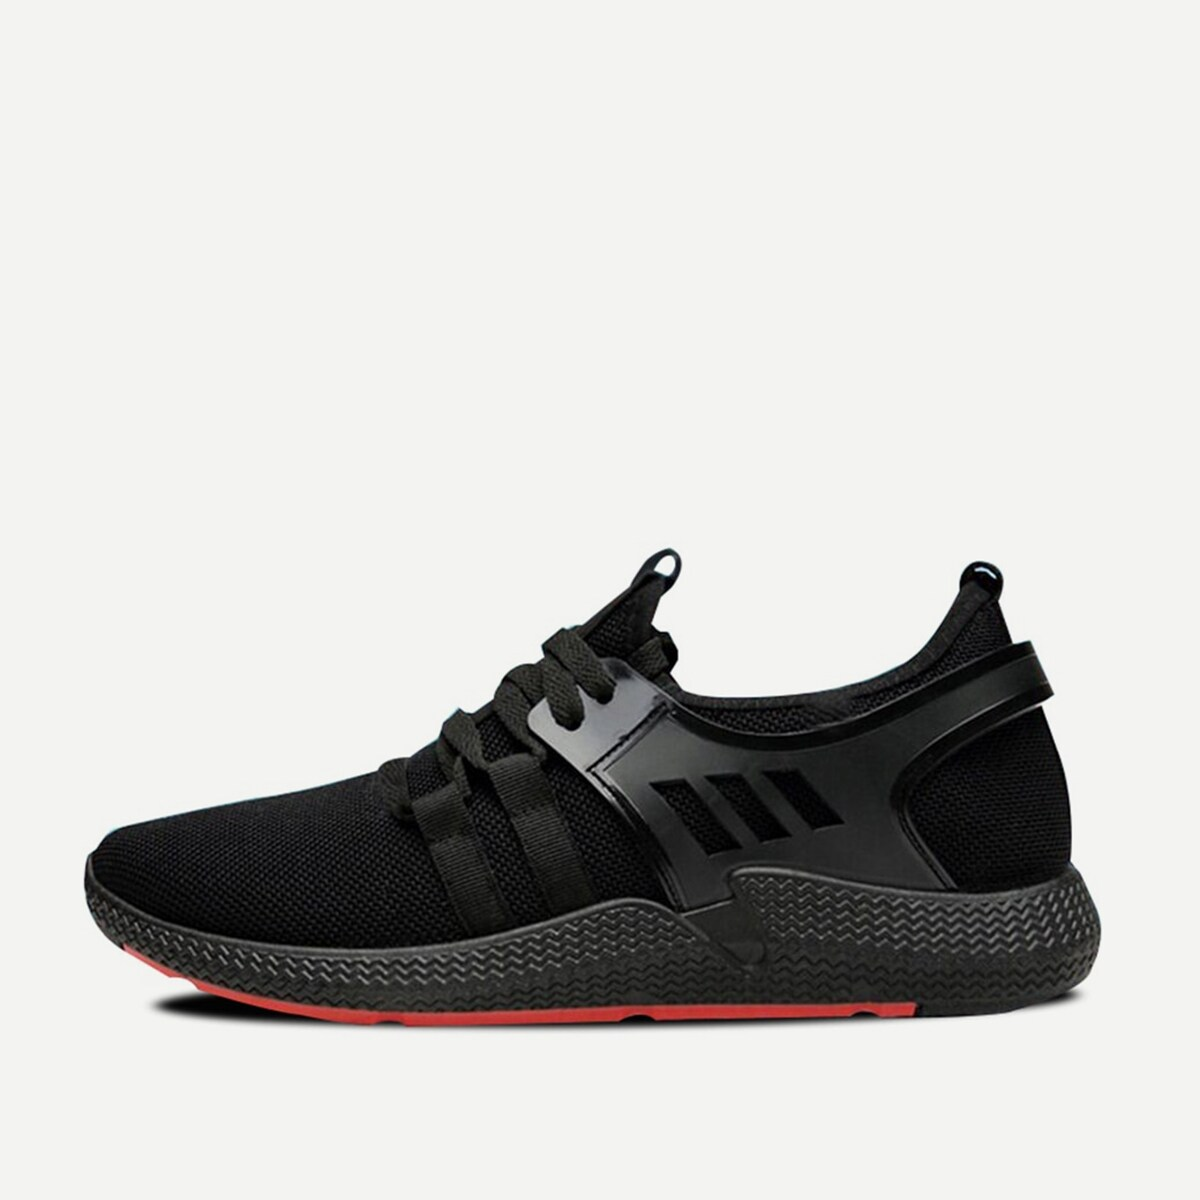 Guys Mesh Panel Lace-up Front Trainers in Black by ROMWE on GOOFASH